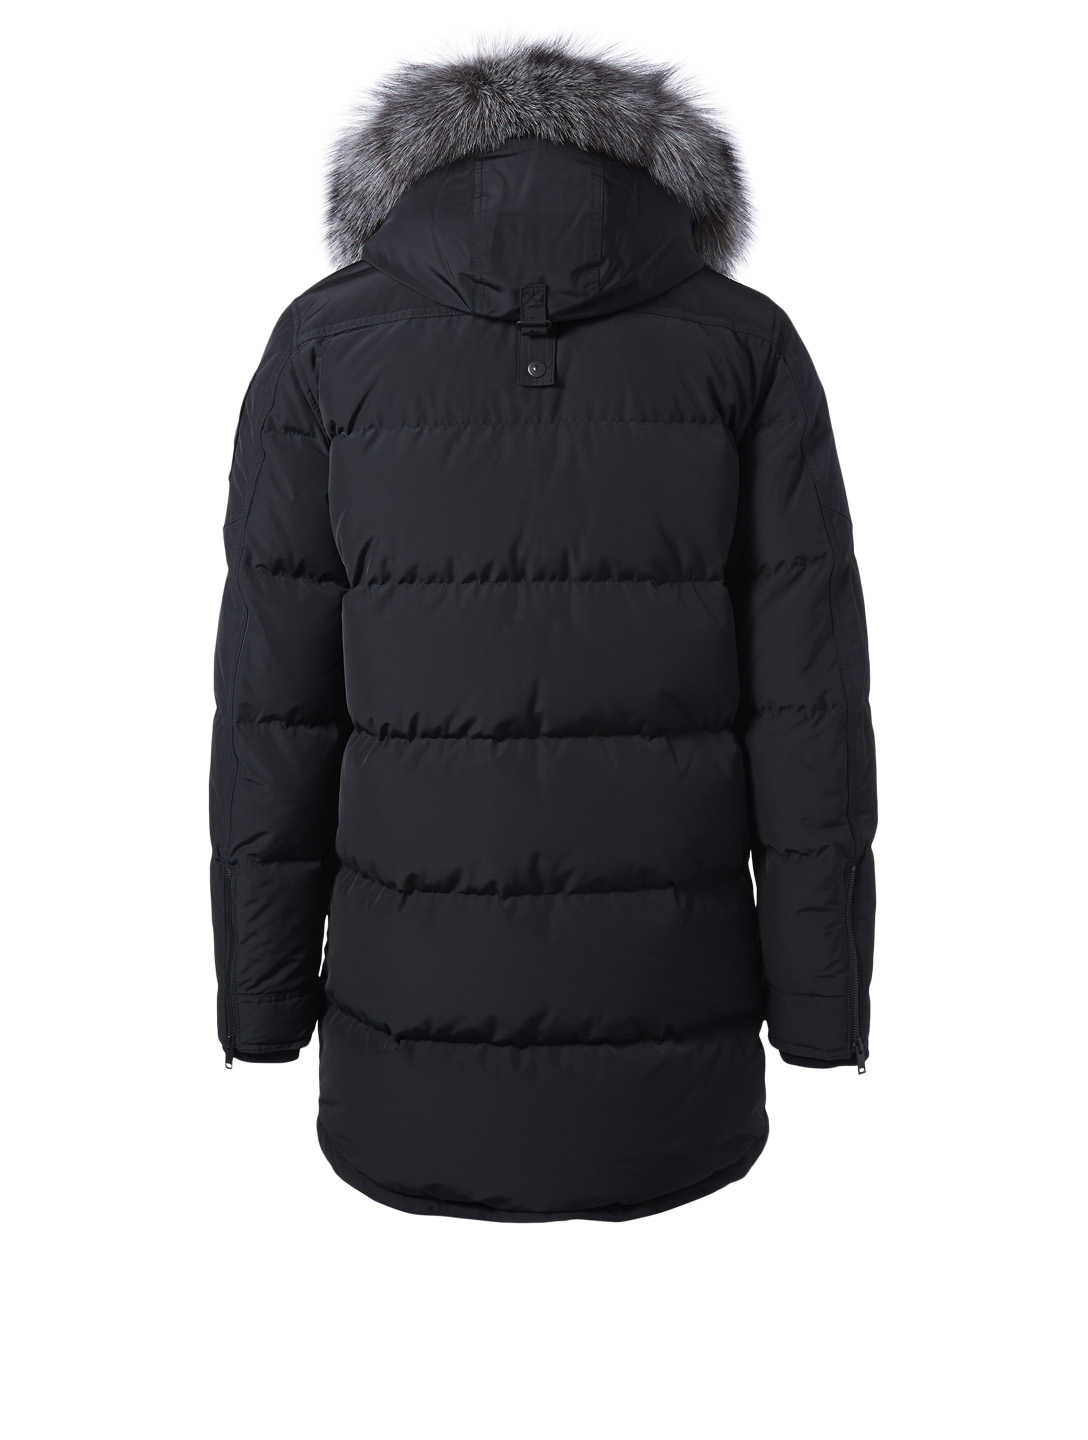 MOOSE KNUCKLES Westgore Ontario Parka With Fur Trim Men's Black